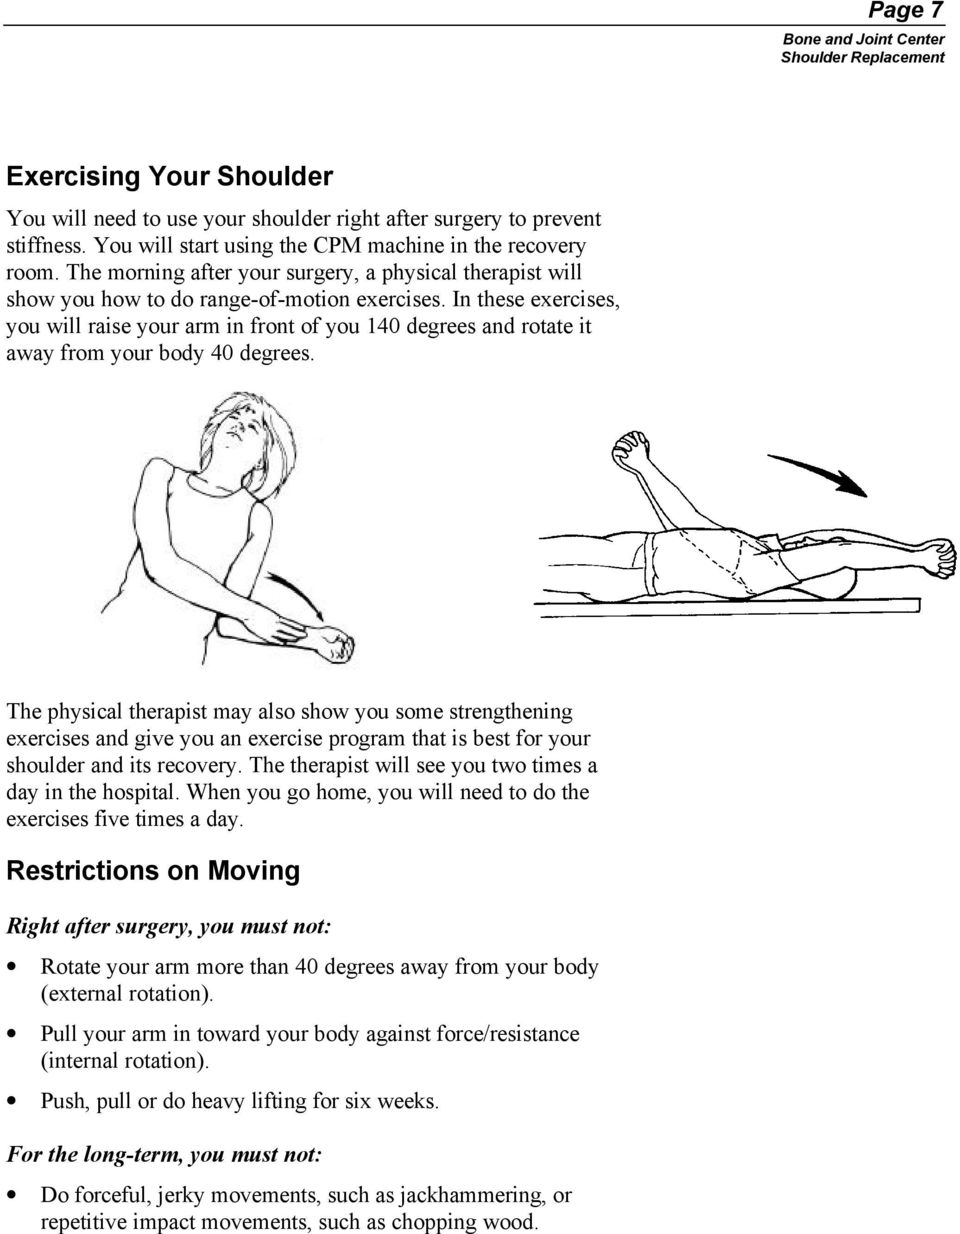 In these exercises, you will raise your arm in front of you 140 degrees and rotate it away from your body 40 degrees.